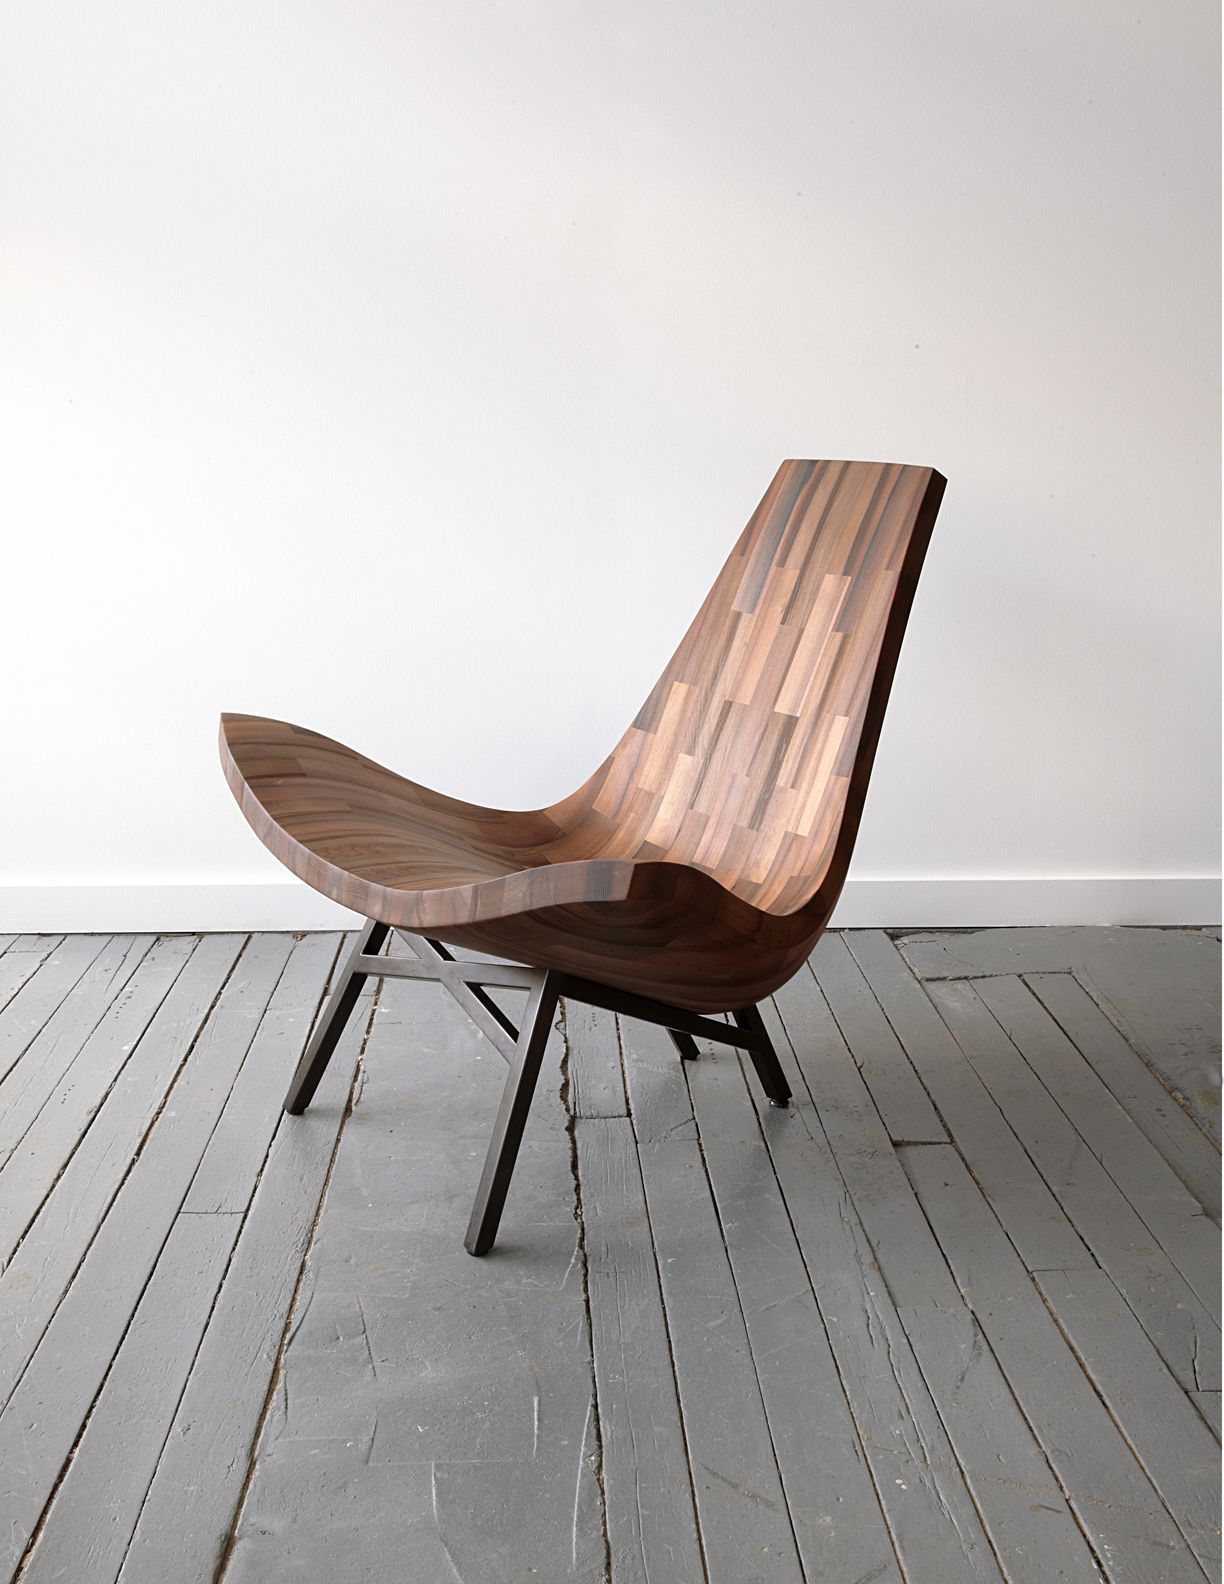 Water Tower Chair By Bellboy (Mat Driscoll)   Made From The Reclaimed  Redwood Staves Of A Park Avenue Rooftop Water Tank.